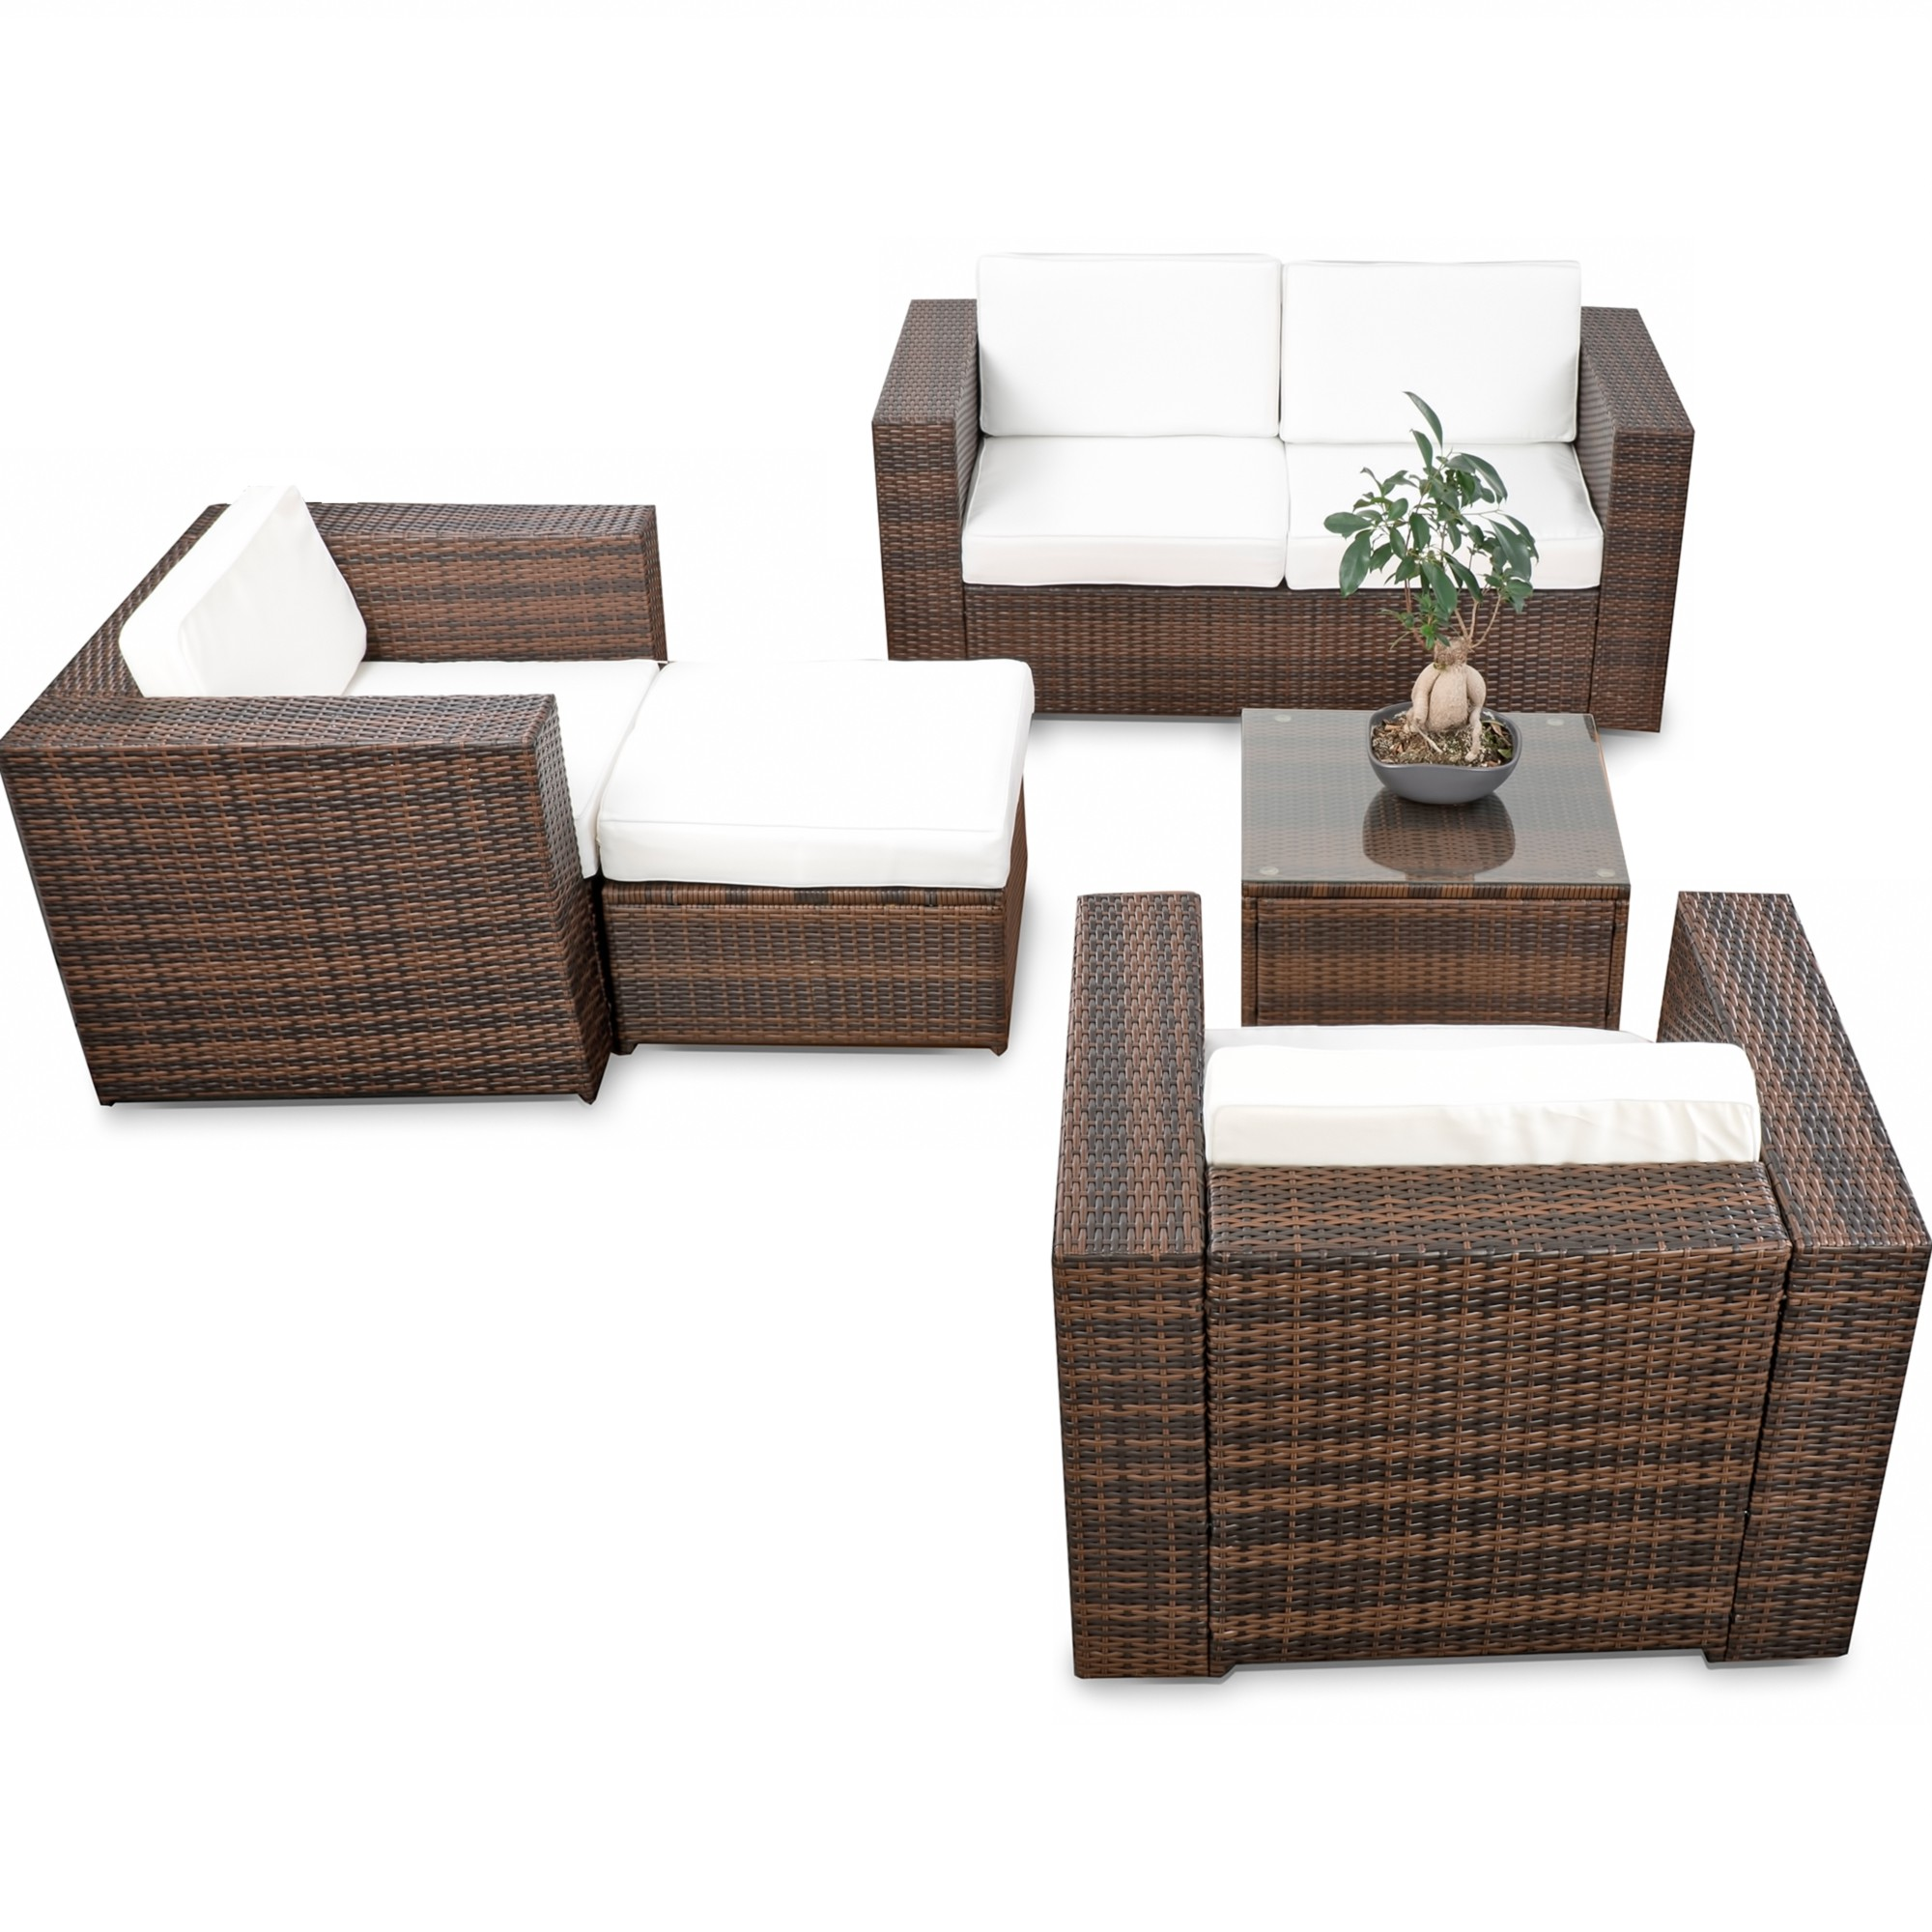 balkon loungem bel g nstig lounge balkon kaufen. Black Bedroom Furniture Sets. Home Design Ideas